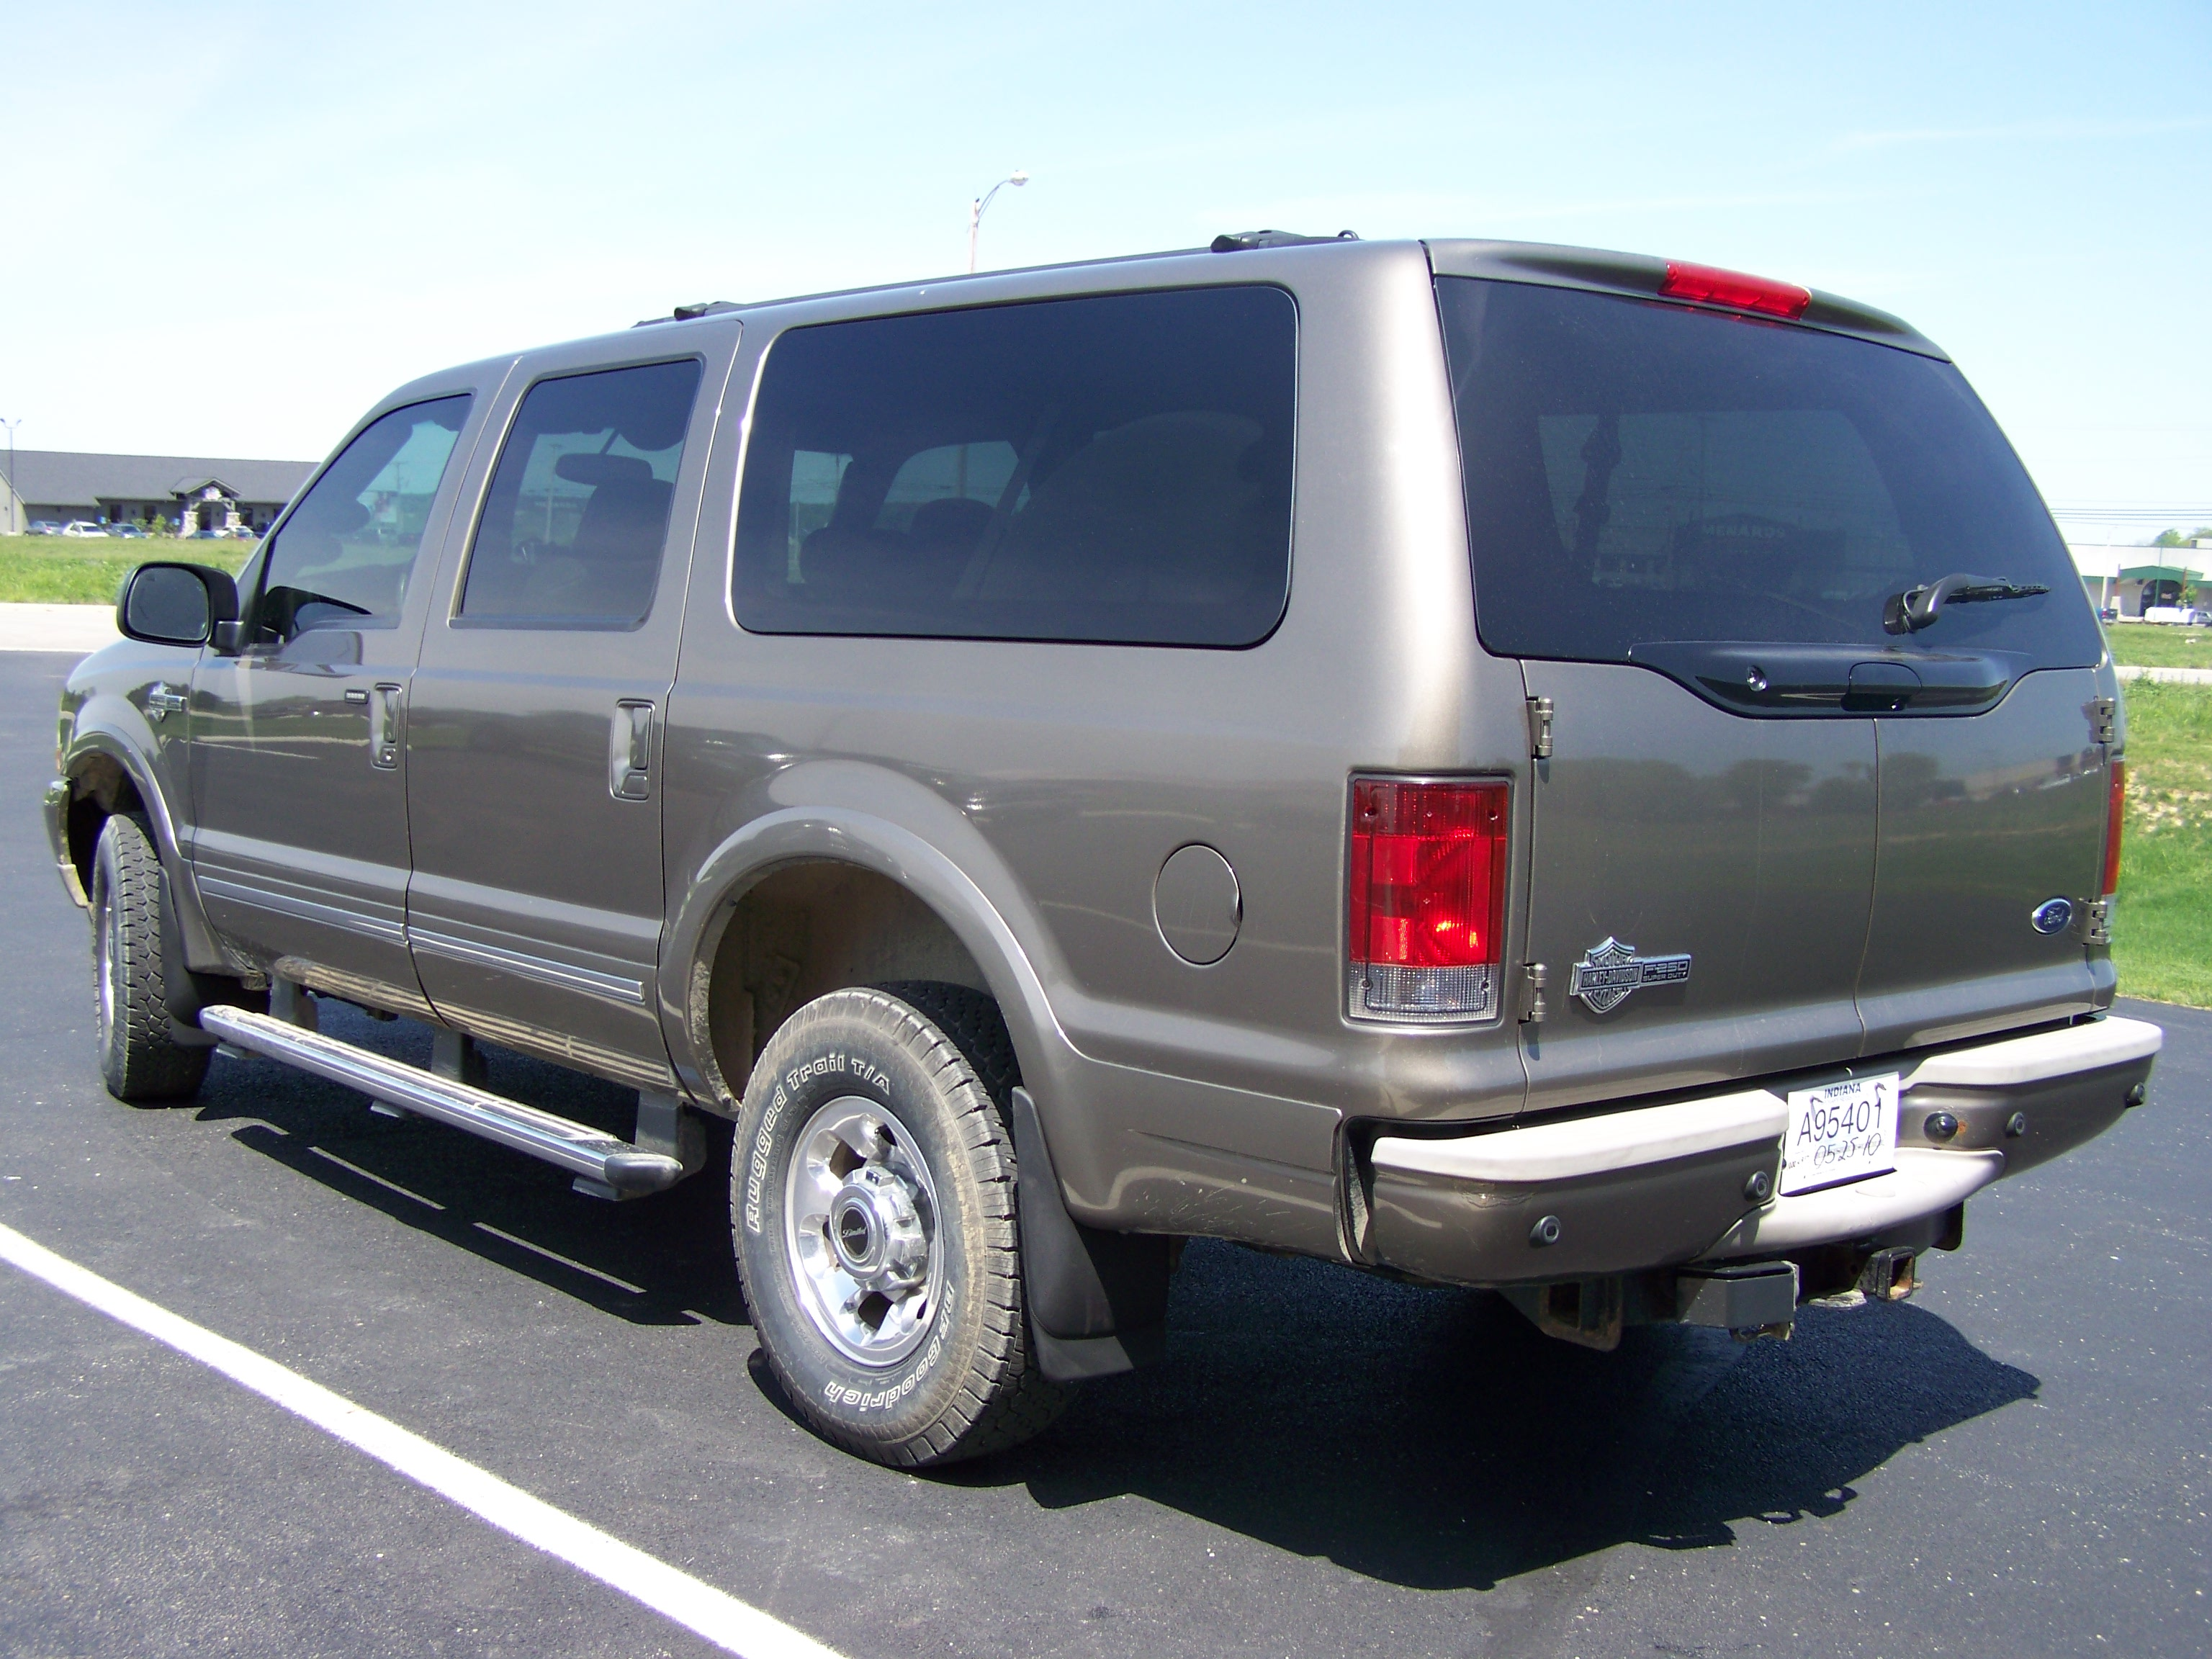 Towing Hooks 2012 Dodge Ram 1500 2014 Tow